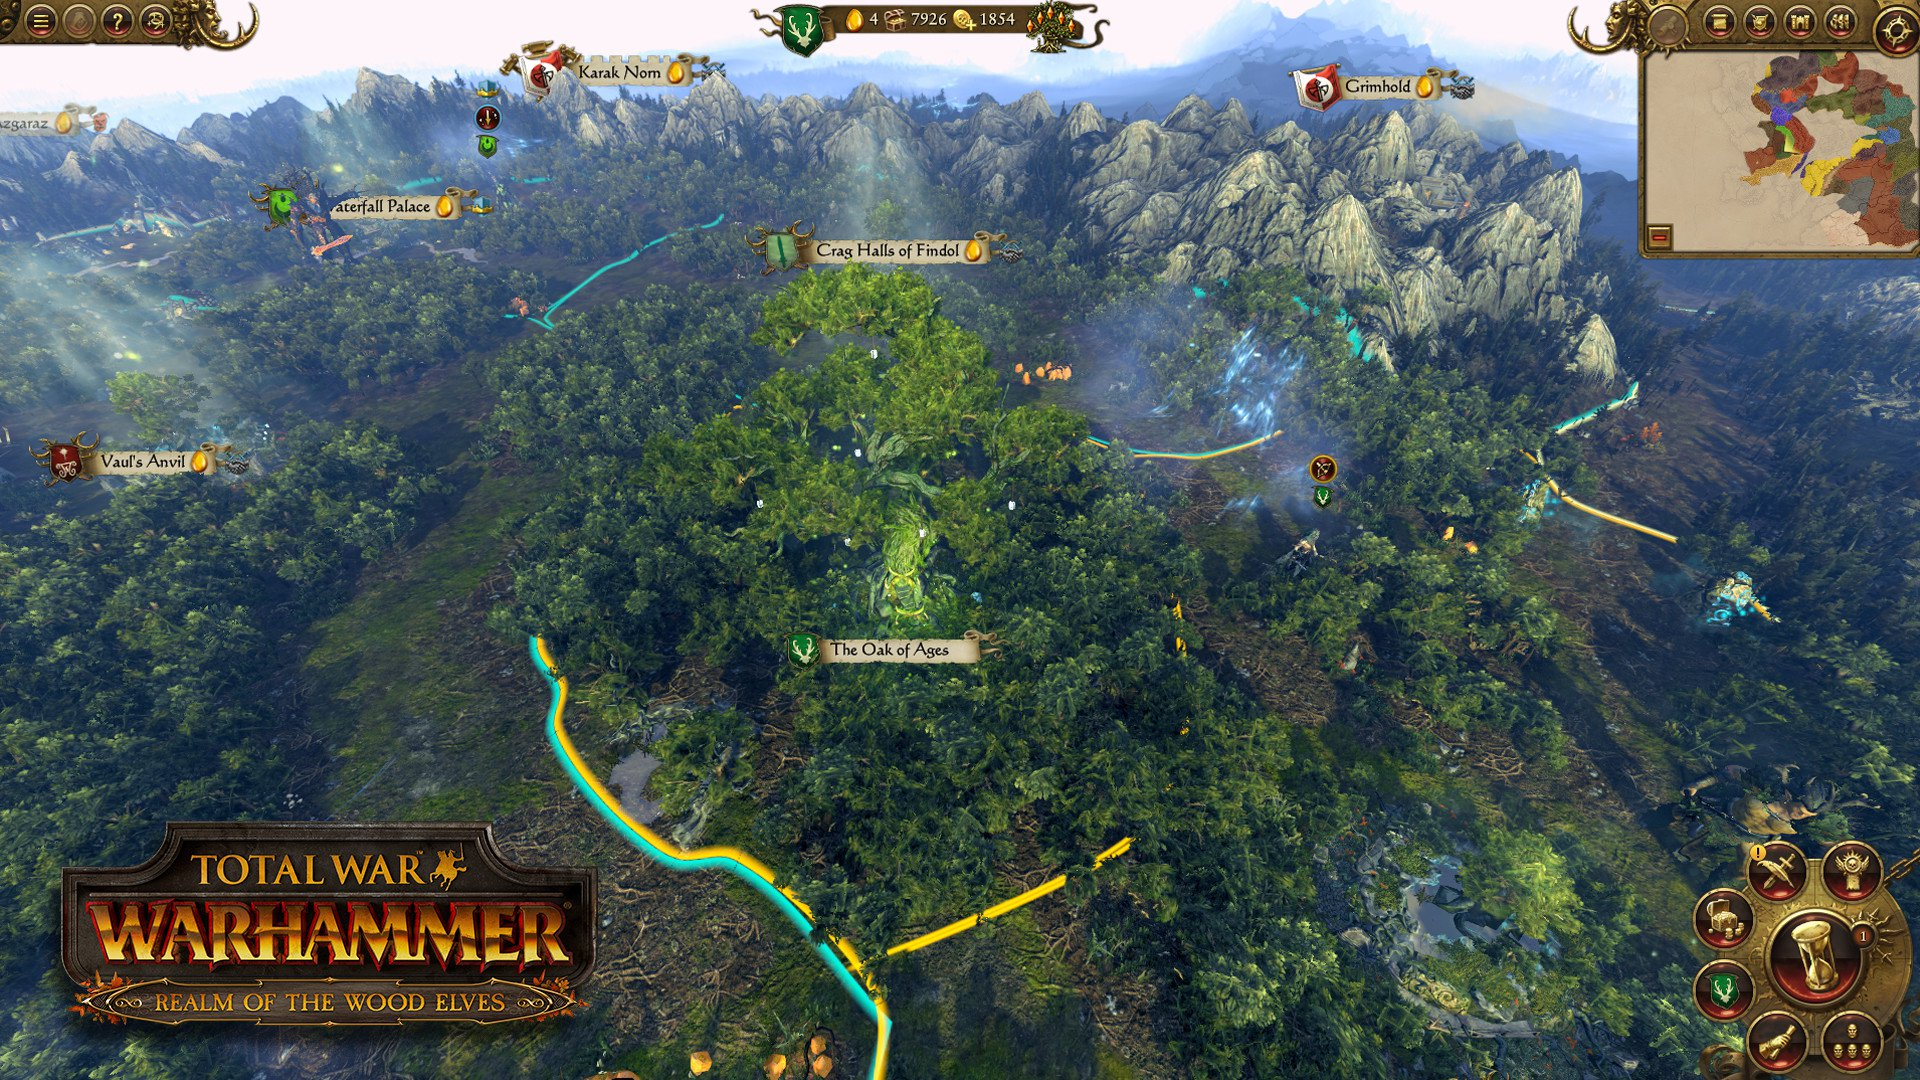 Total War WARHAMMER Realm of The Wood Elves 6